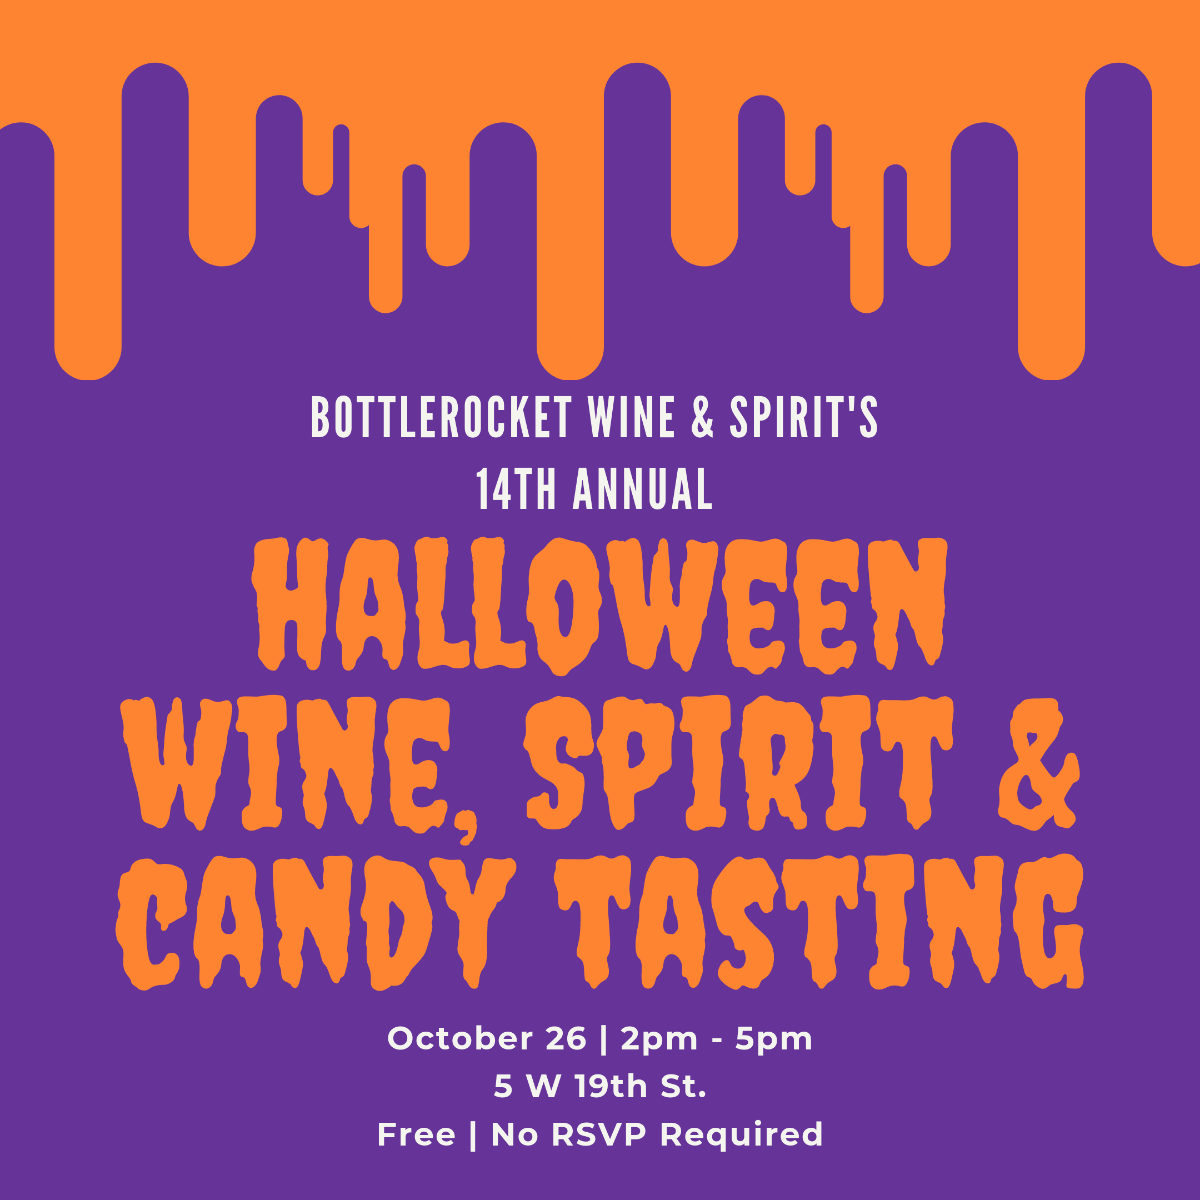 Halloween Free Wine Spirits and Candy Tasting